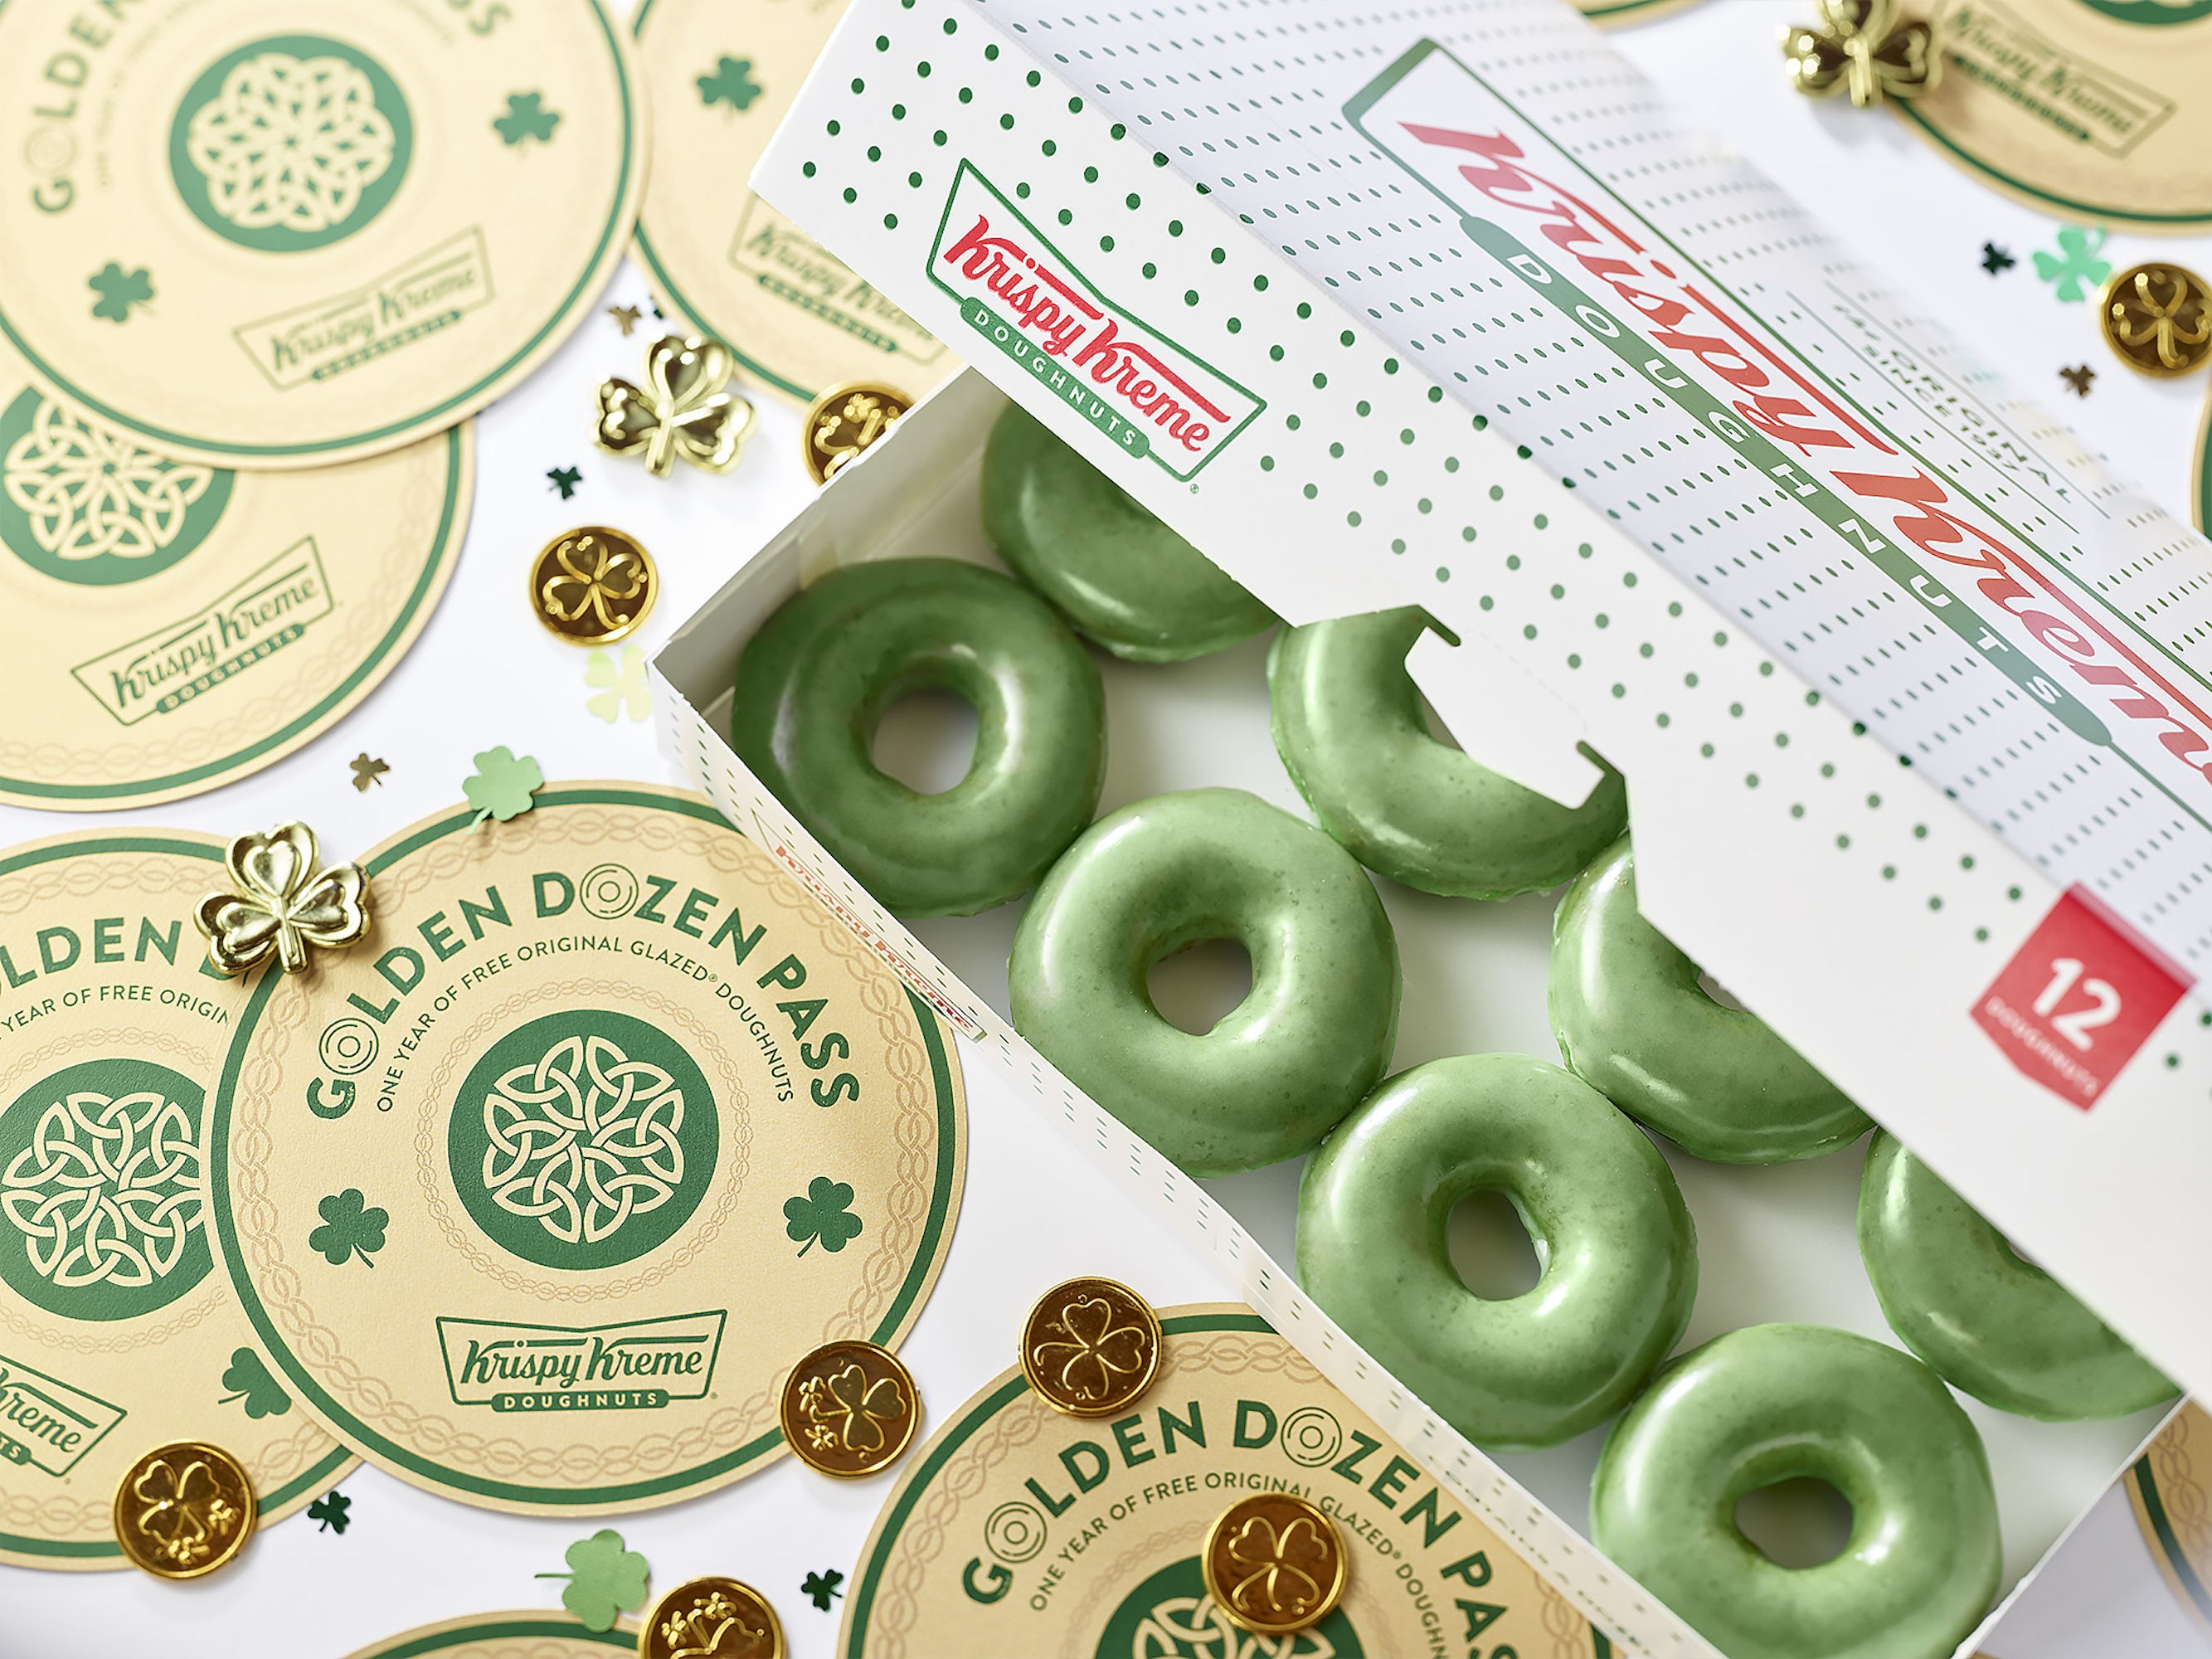 Krispy Kreme Is Turning Green For St. Patrick's Day & Giving Away Free Doughnuts